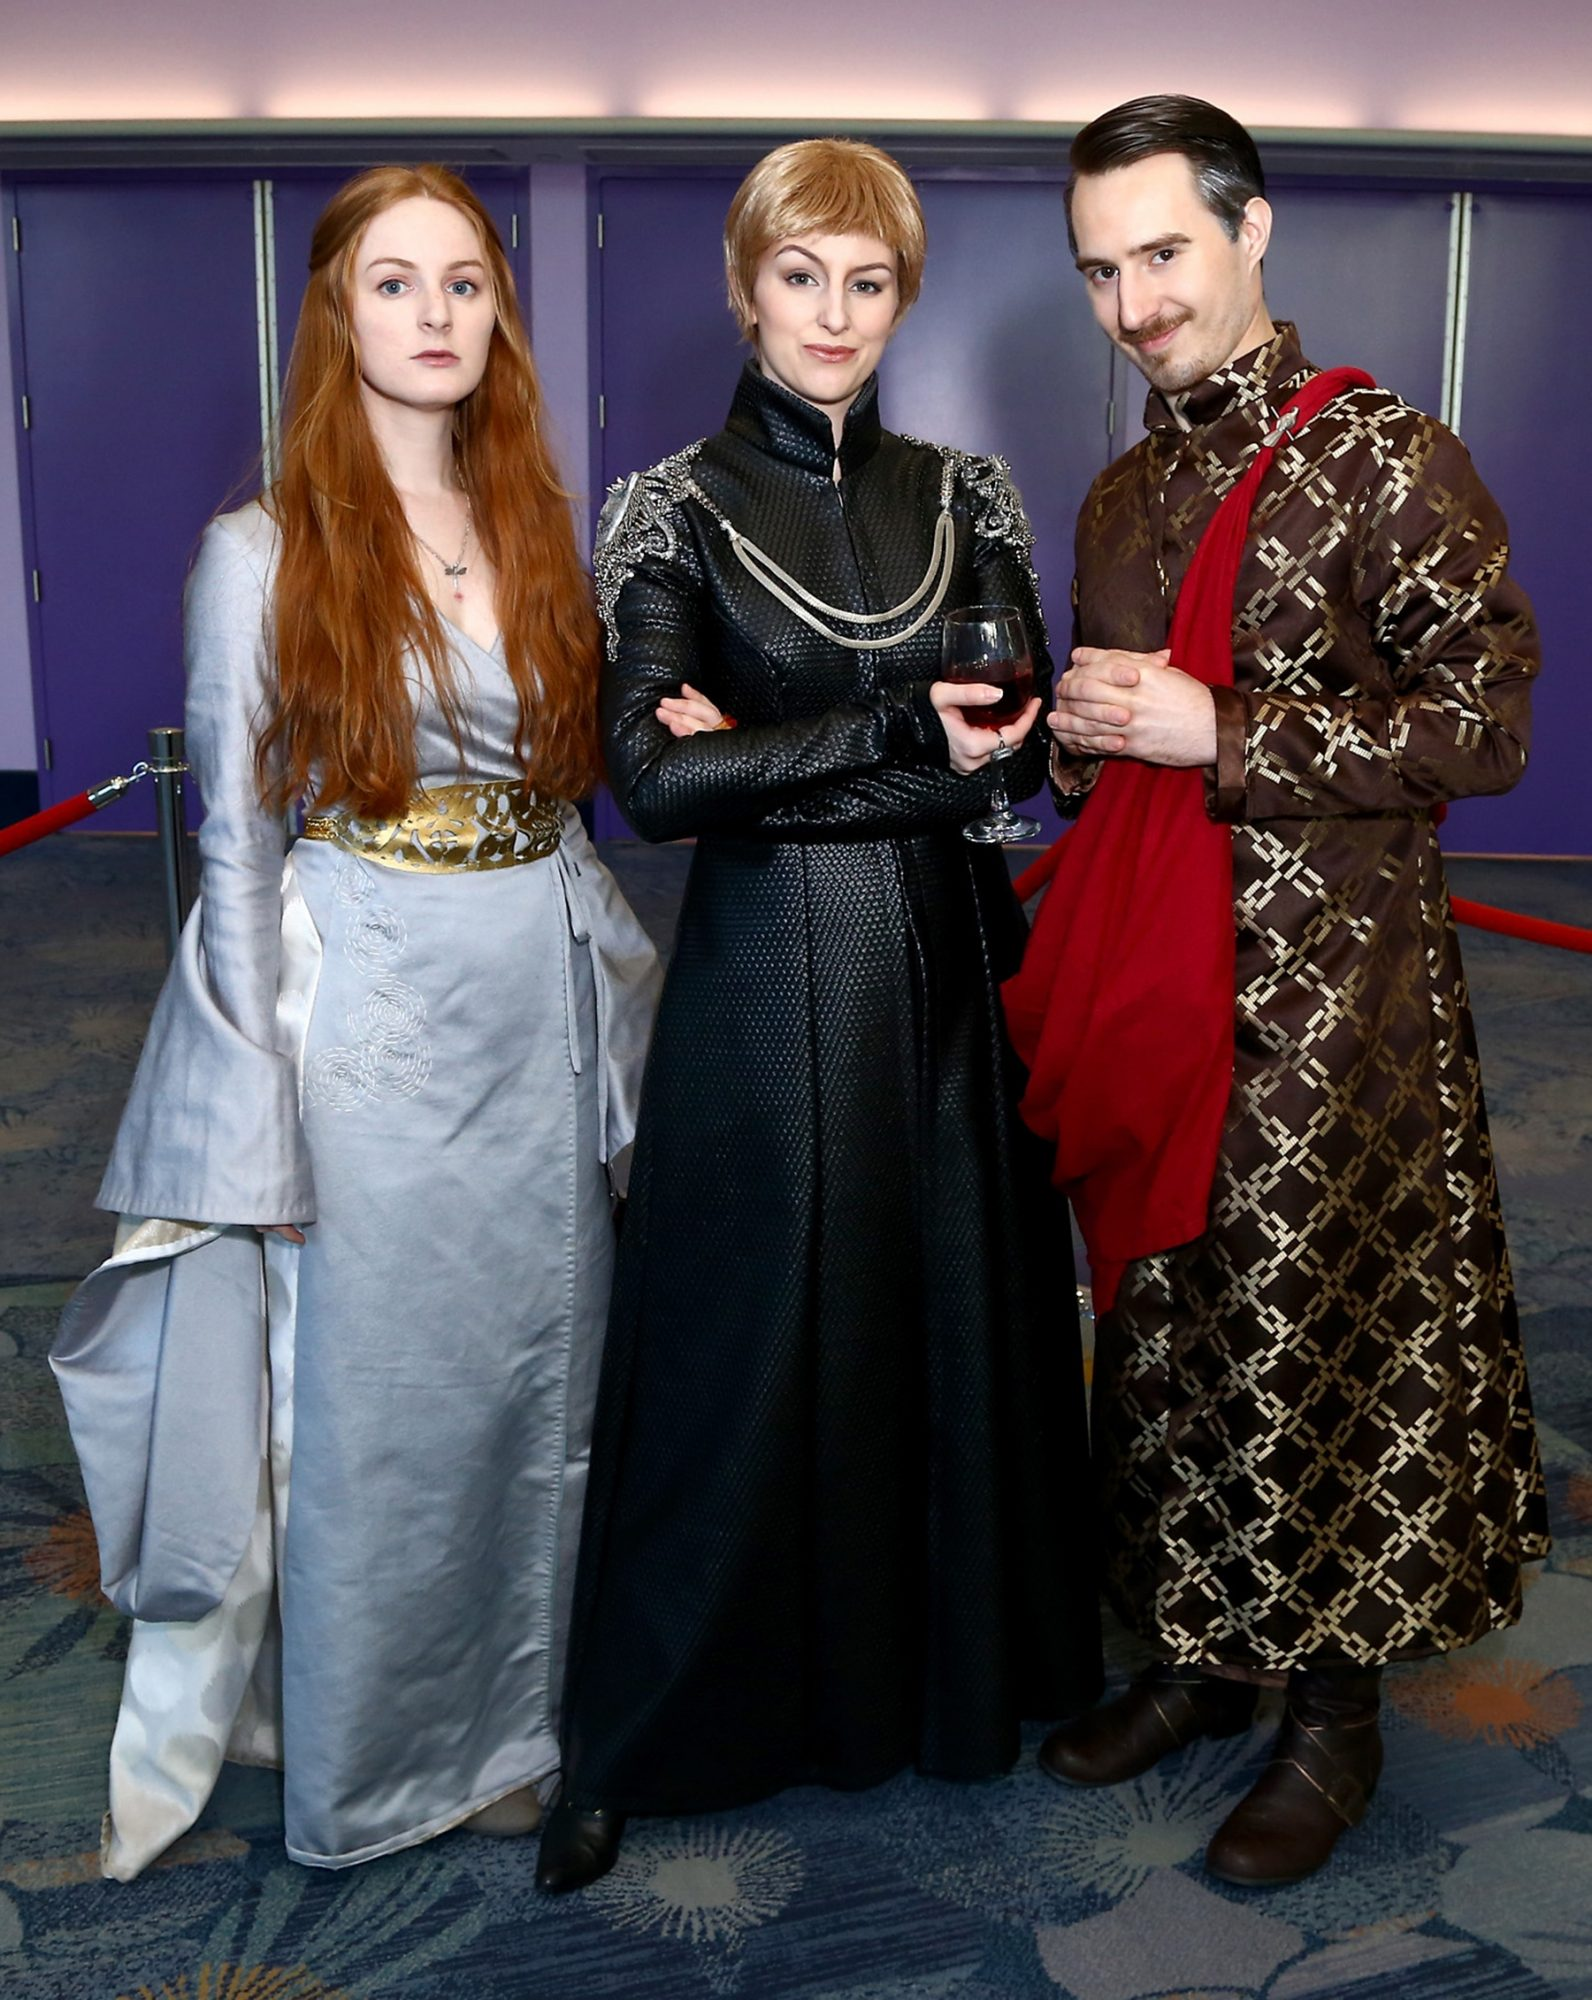 Sansa Stark, Cersei Lannister, and Littlefinger Cosplayers at WonderCon 2017